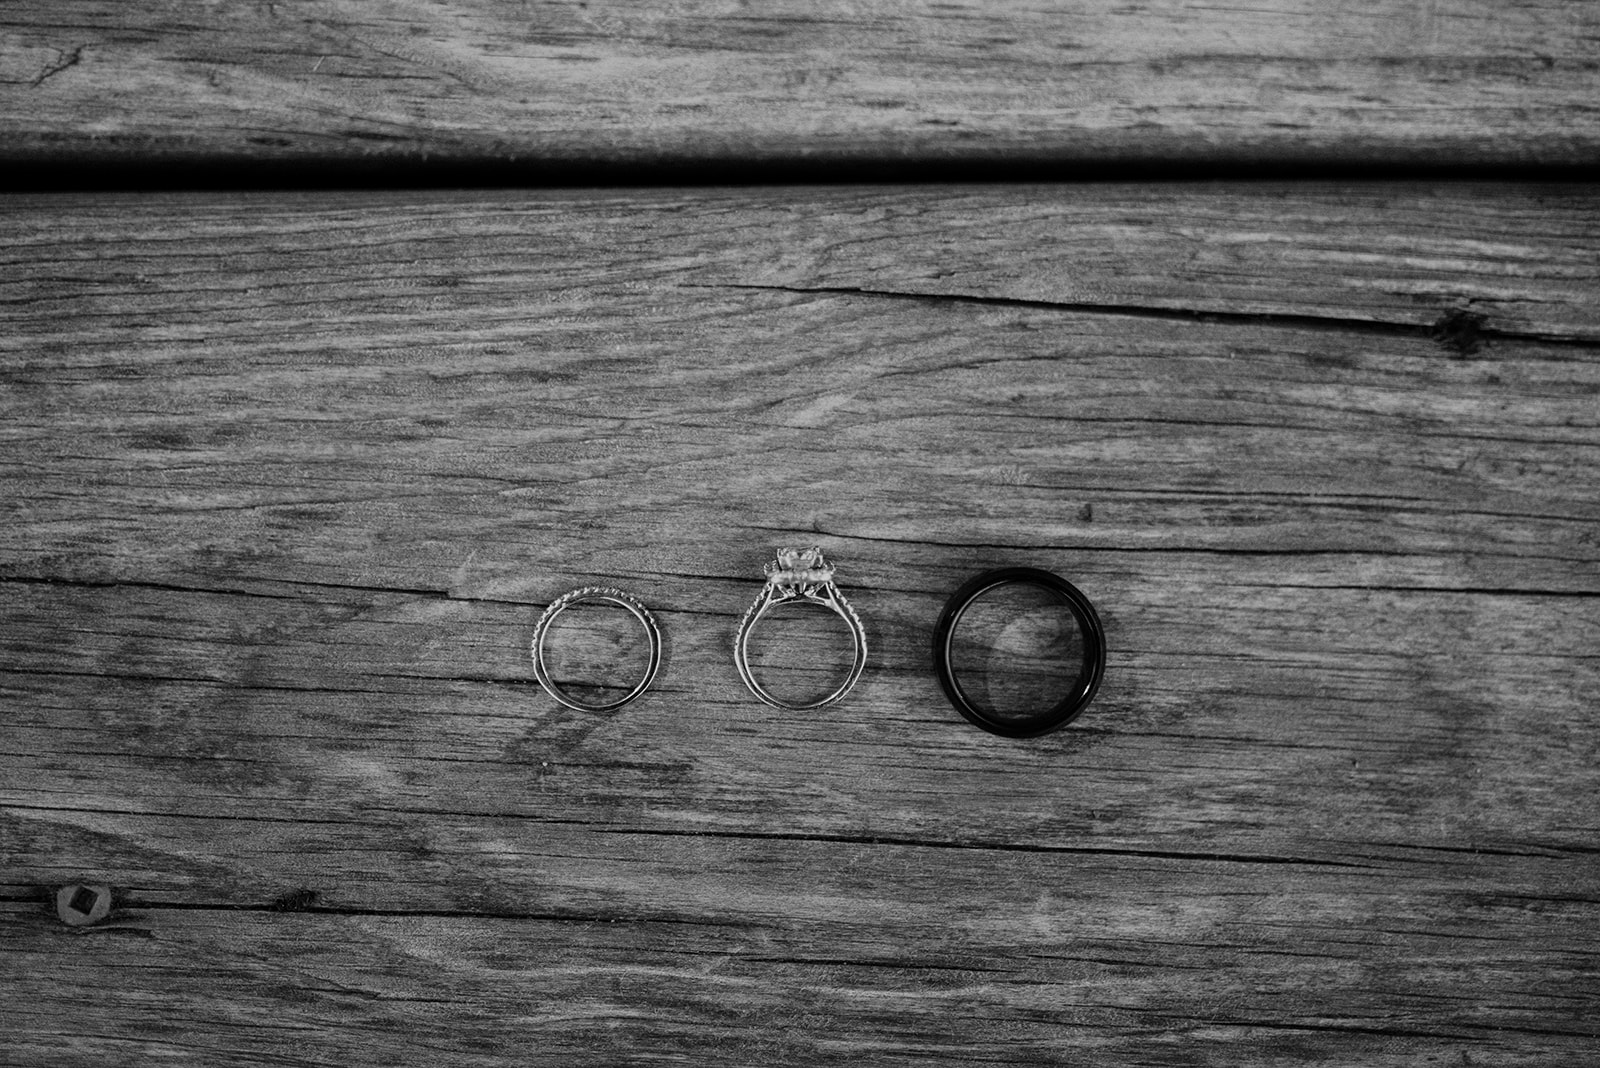 overthevineswisconsinwedding_1263.jpg